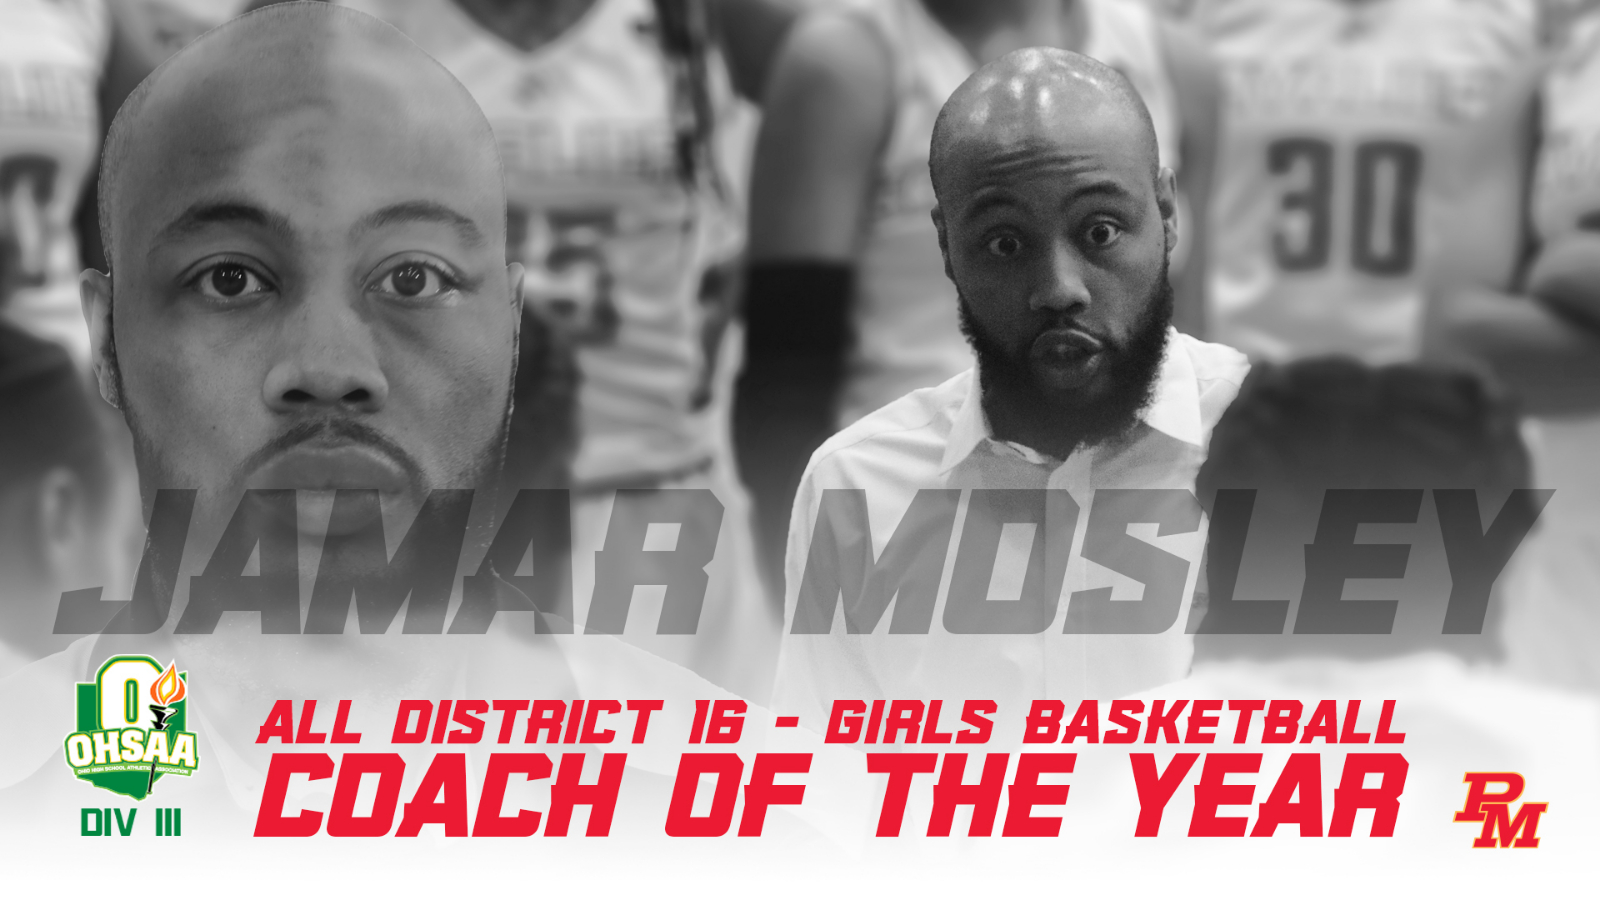 Coach Jamar Mosley voted District 16 Coach of the Year